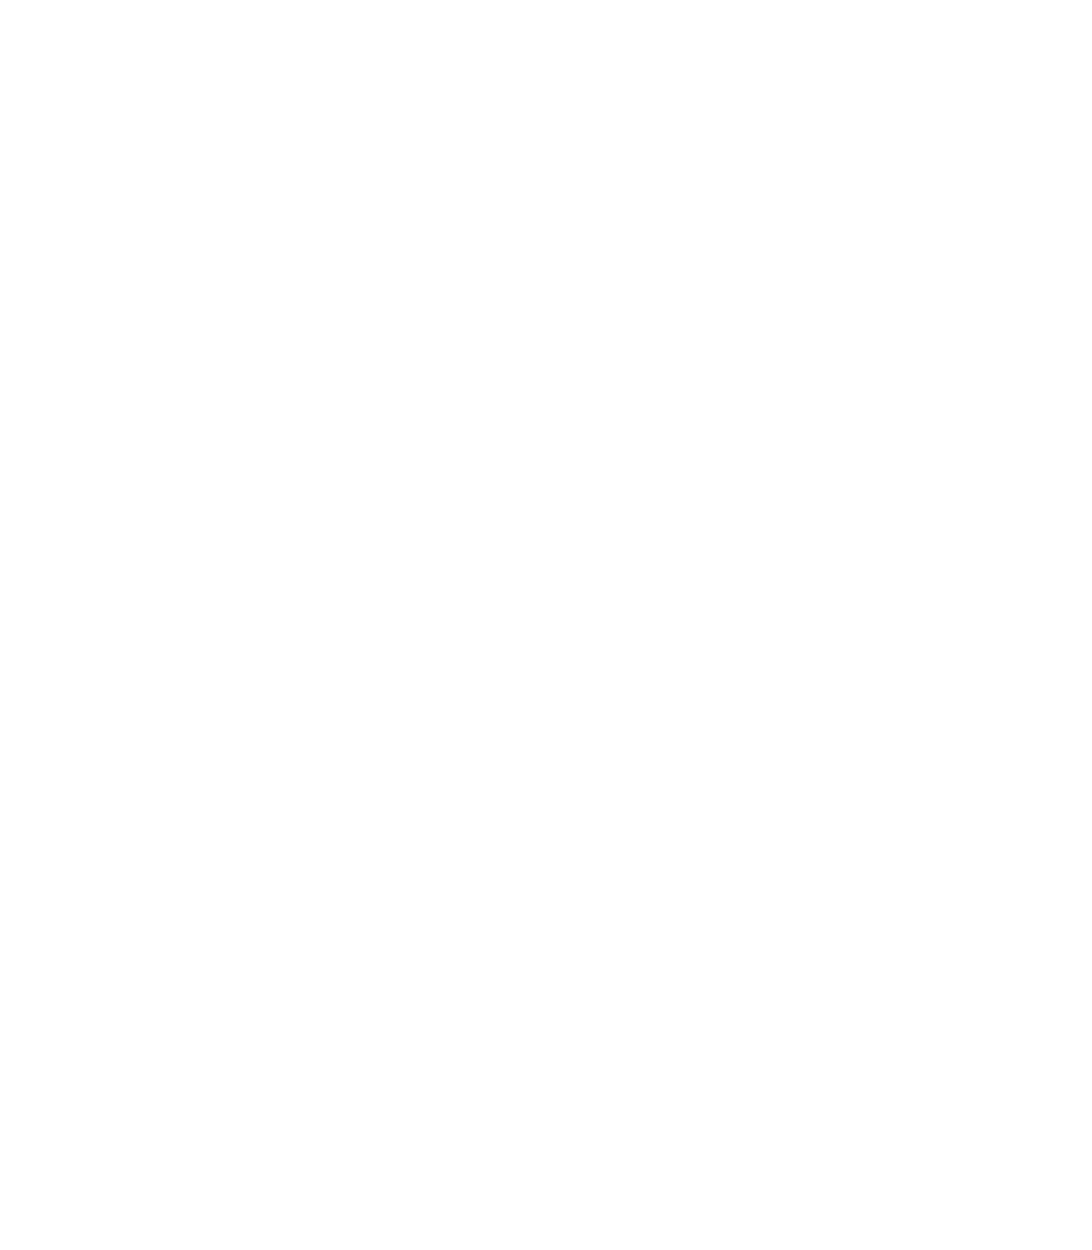 Morganville United Church of Christ